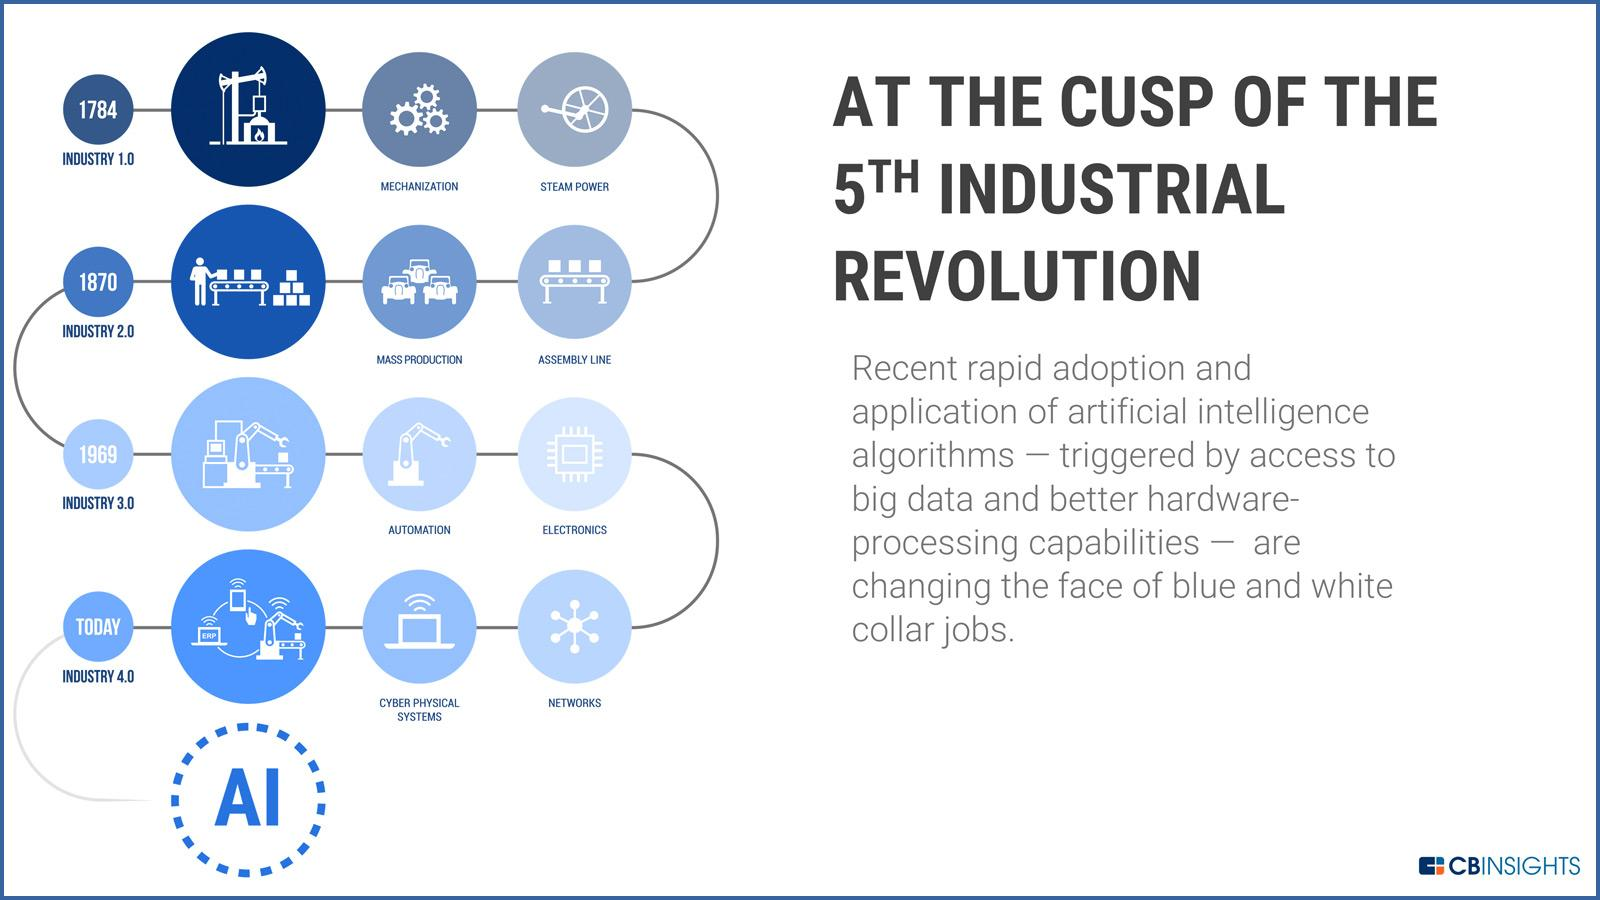 Infographic of the 5 main industrial revolutions